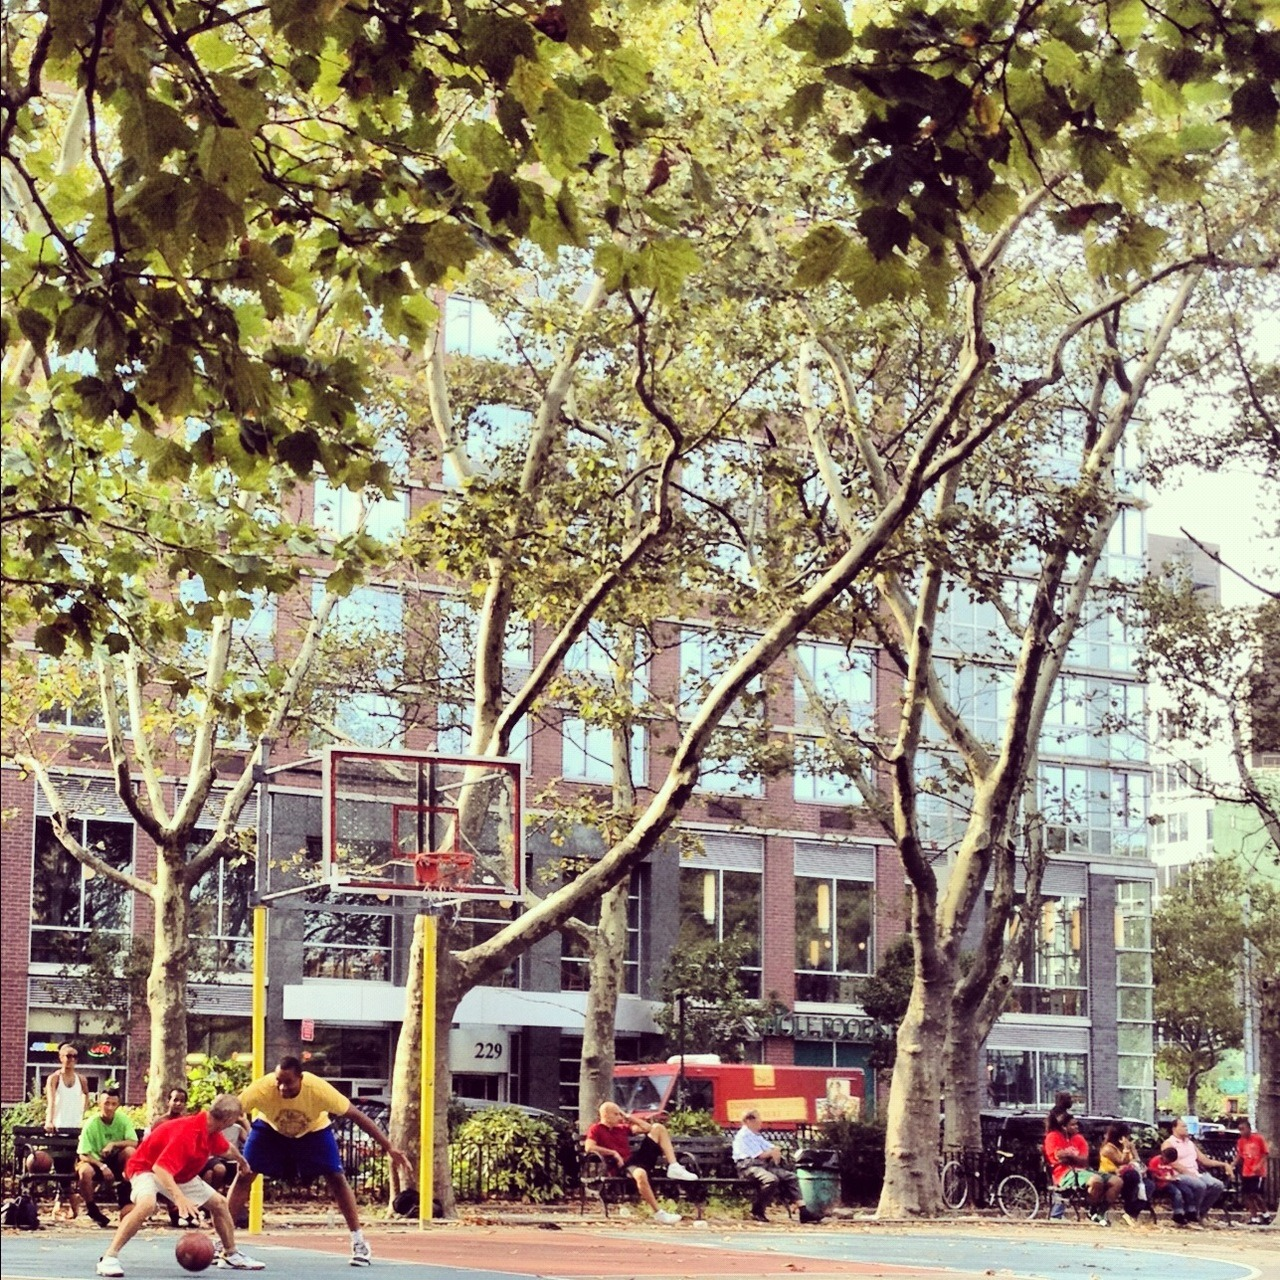 Old Chinese Man Ballin' / Sara Delano Roosevelt Park Playground / Chrystie & Houston / Lower East Side, NYC / 09.08.12 / 4:49PM